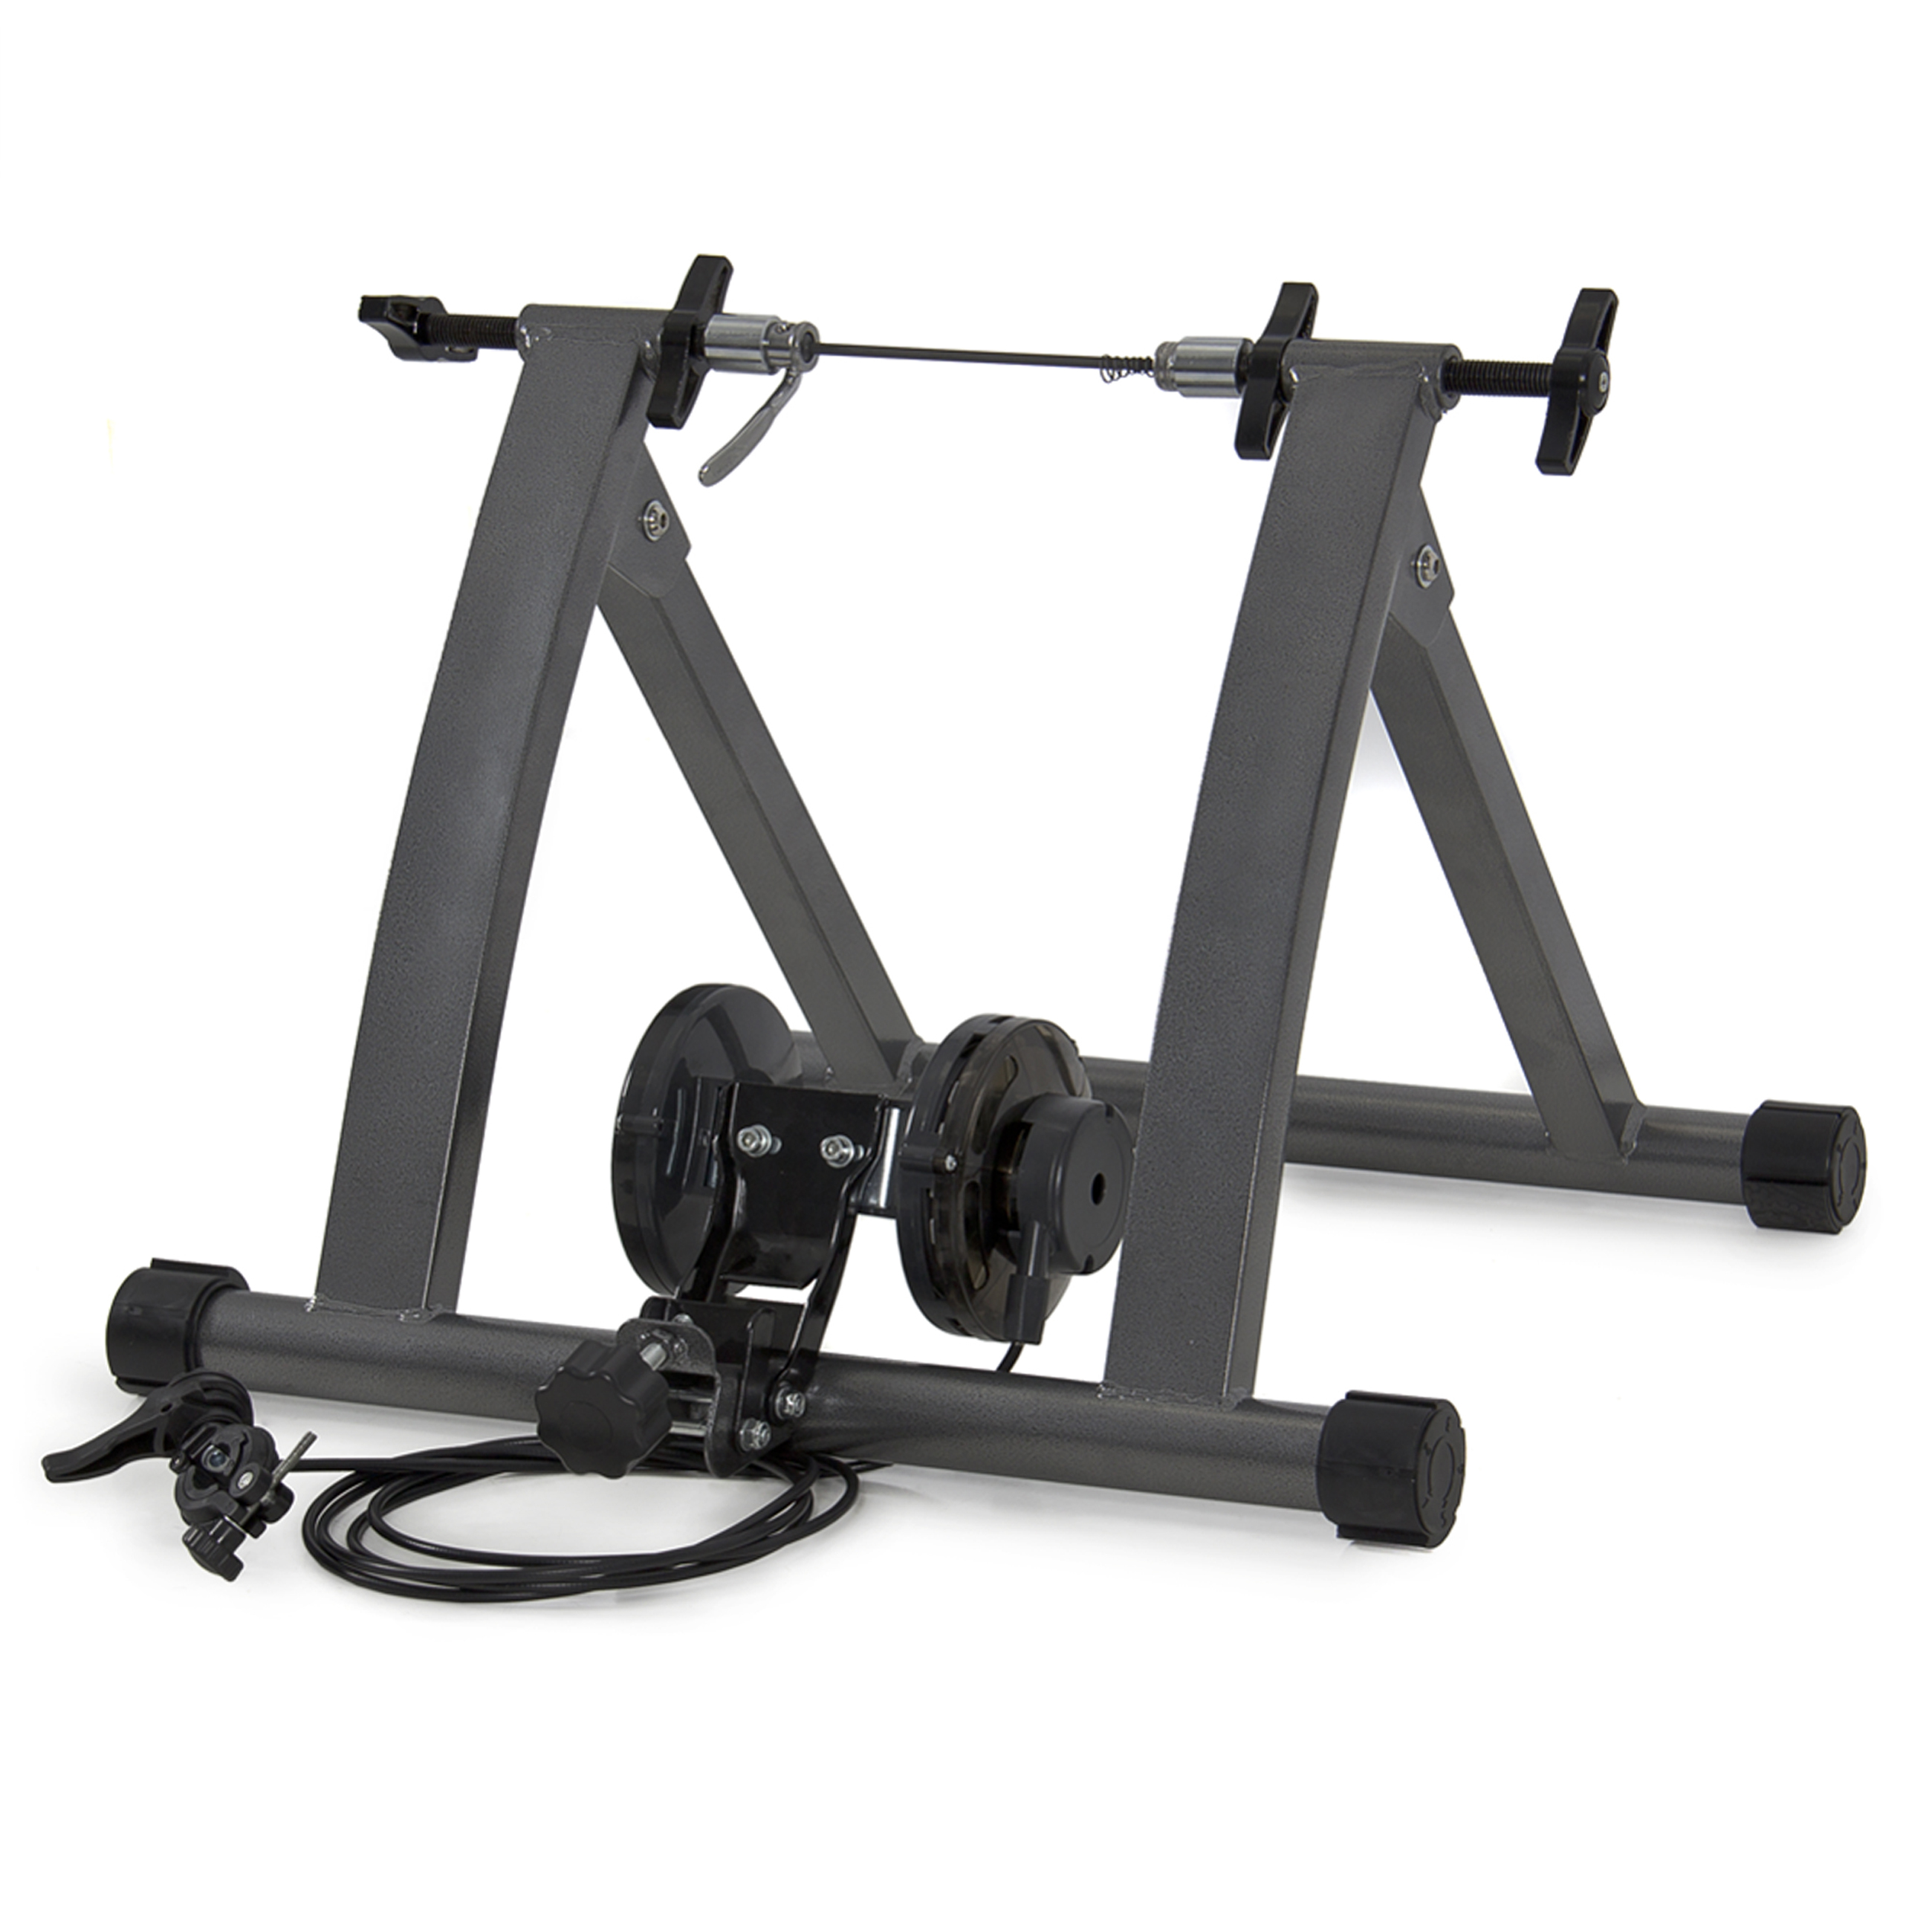 Zimtown Portable Indoor Bike Turbo Stationary Trainer Stand, for Road Bicycle Cycling Training Workout Exercise, 7 Level Magnetic Resistance and Heavy Duty Steel Frame - image 2 of 2